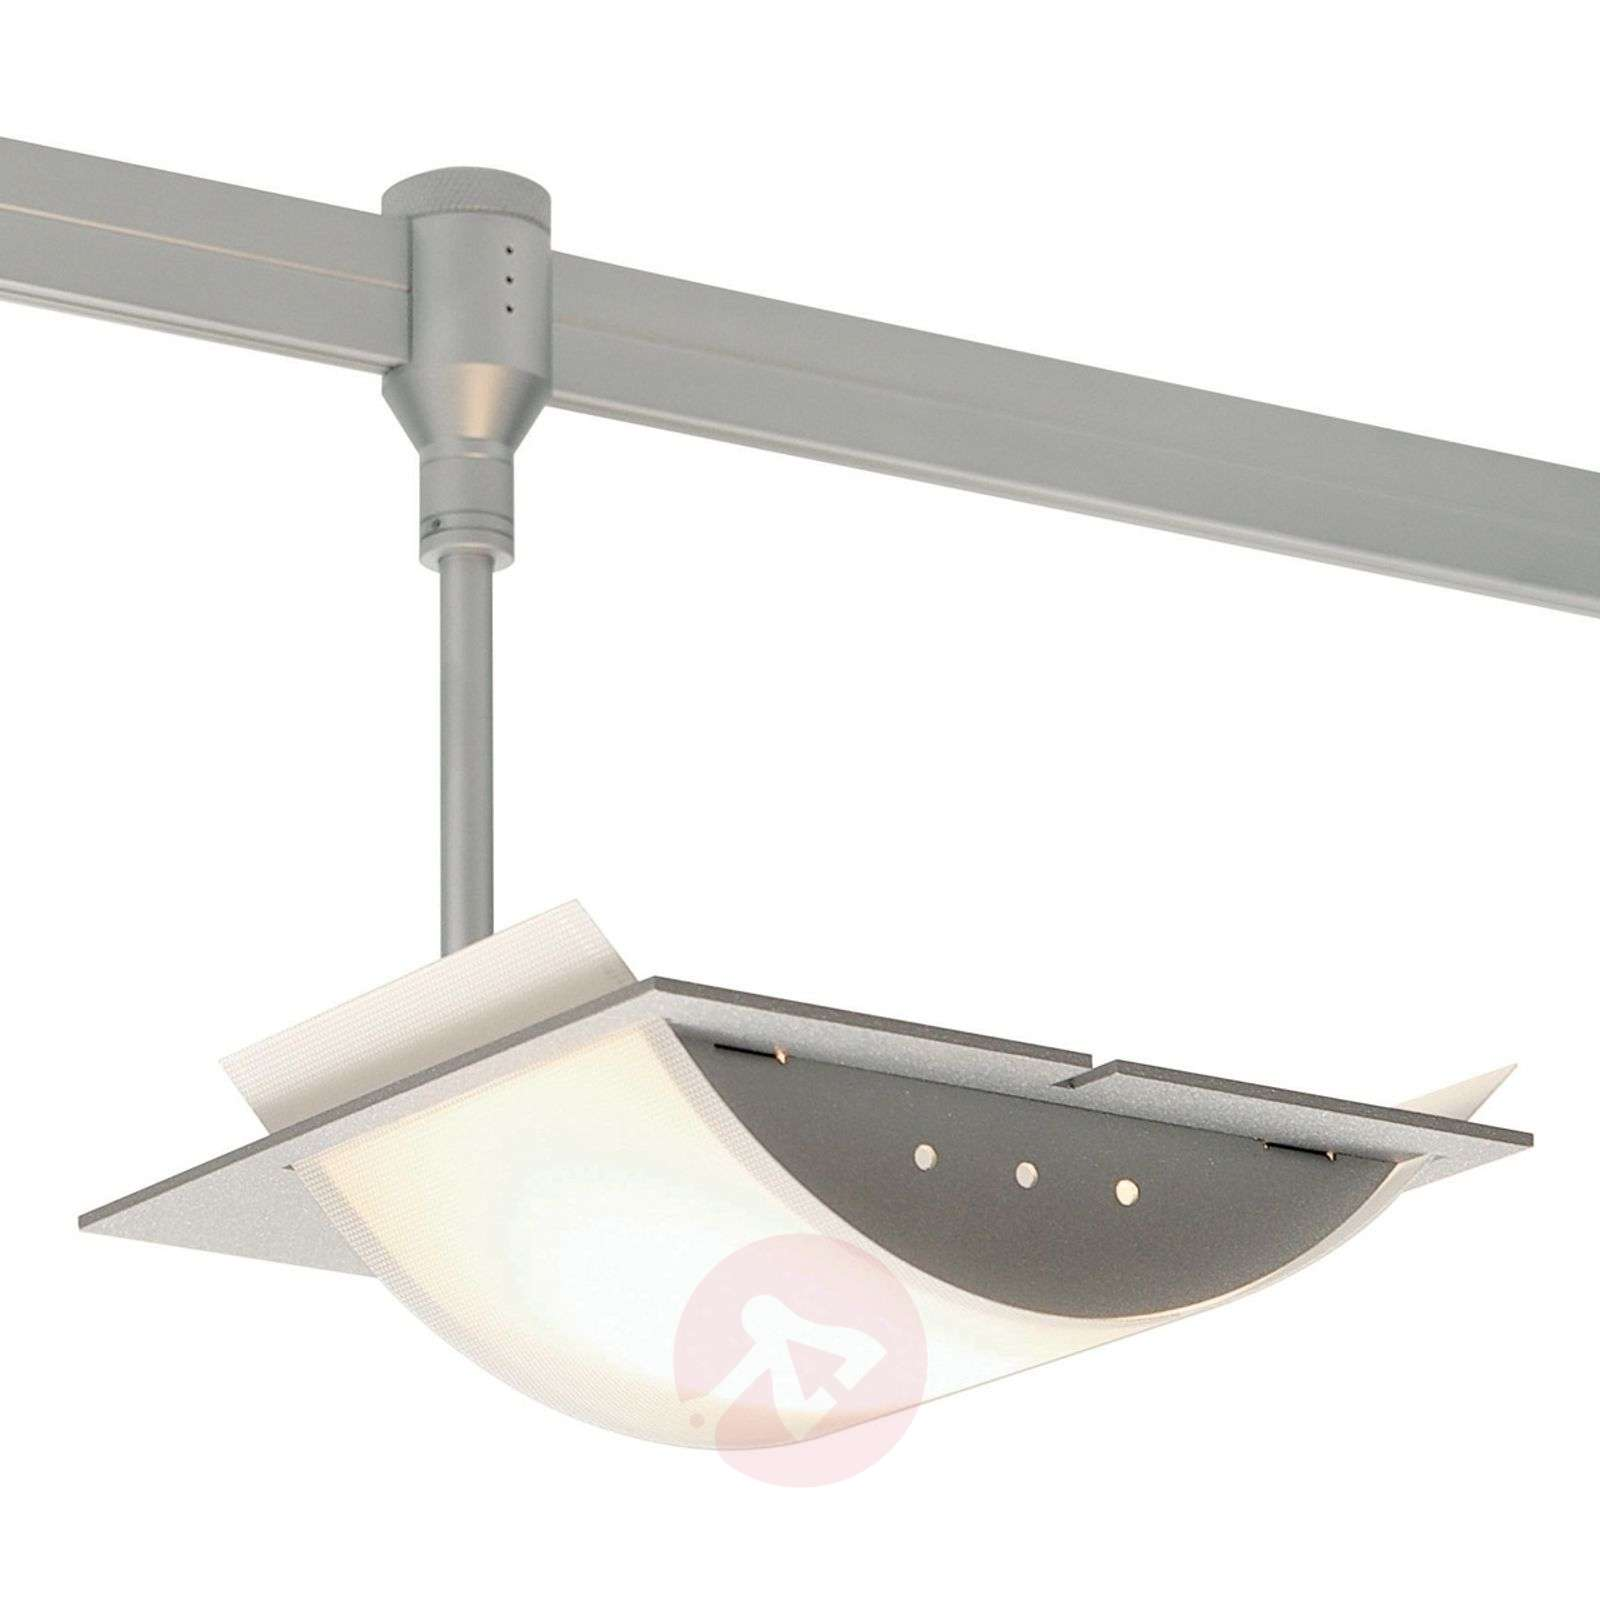 Luminaire HIGH FLIGH GALERIE pour rail CHECK IN-7250269-01